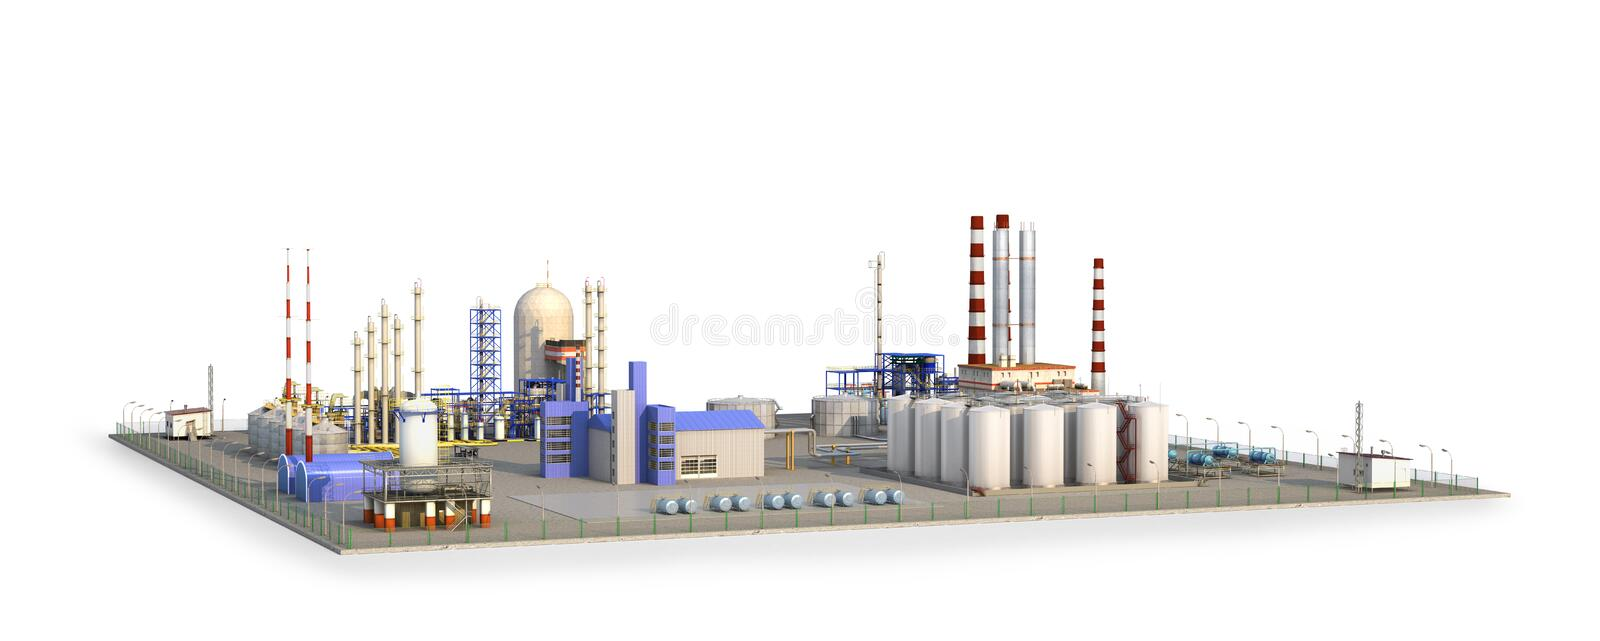 Factory outside Isolated on white background. vector illustration